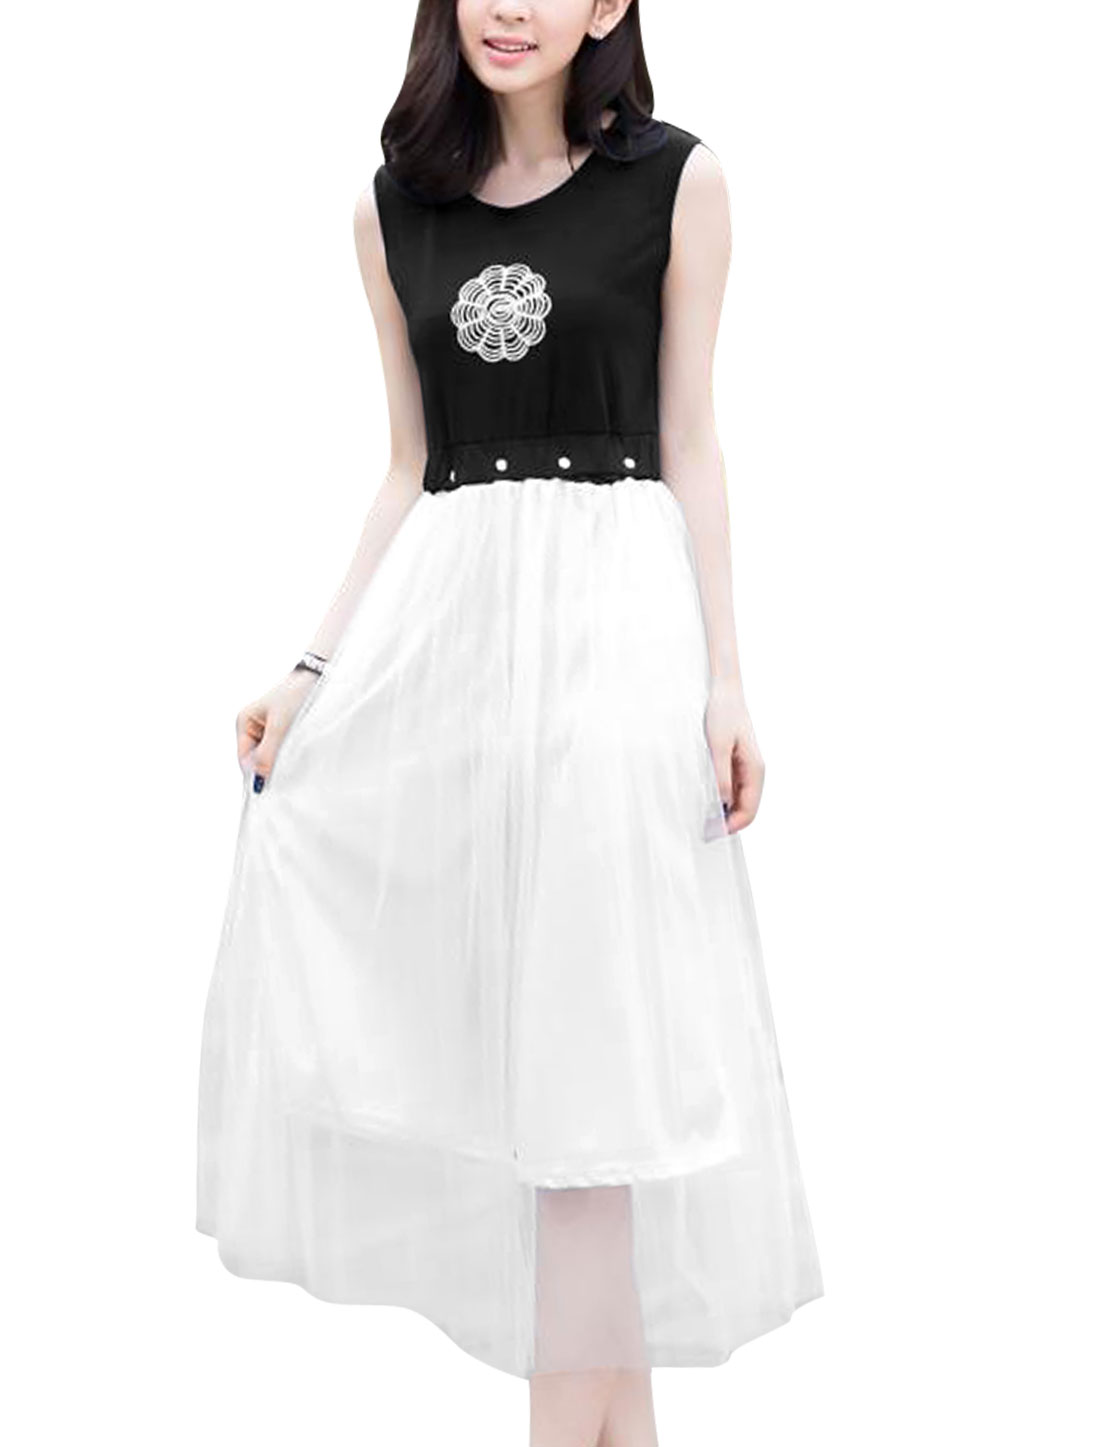 Lady Round Neck Embroidered Design Mesh Panel A-Line Dress Black White XS